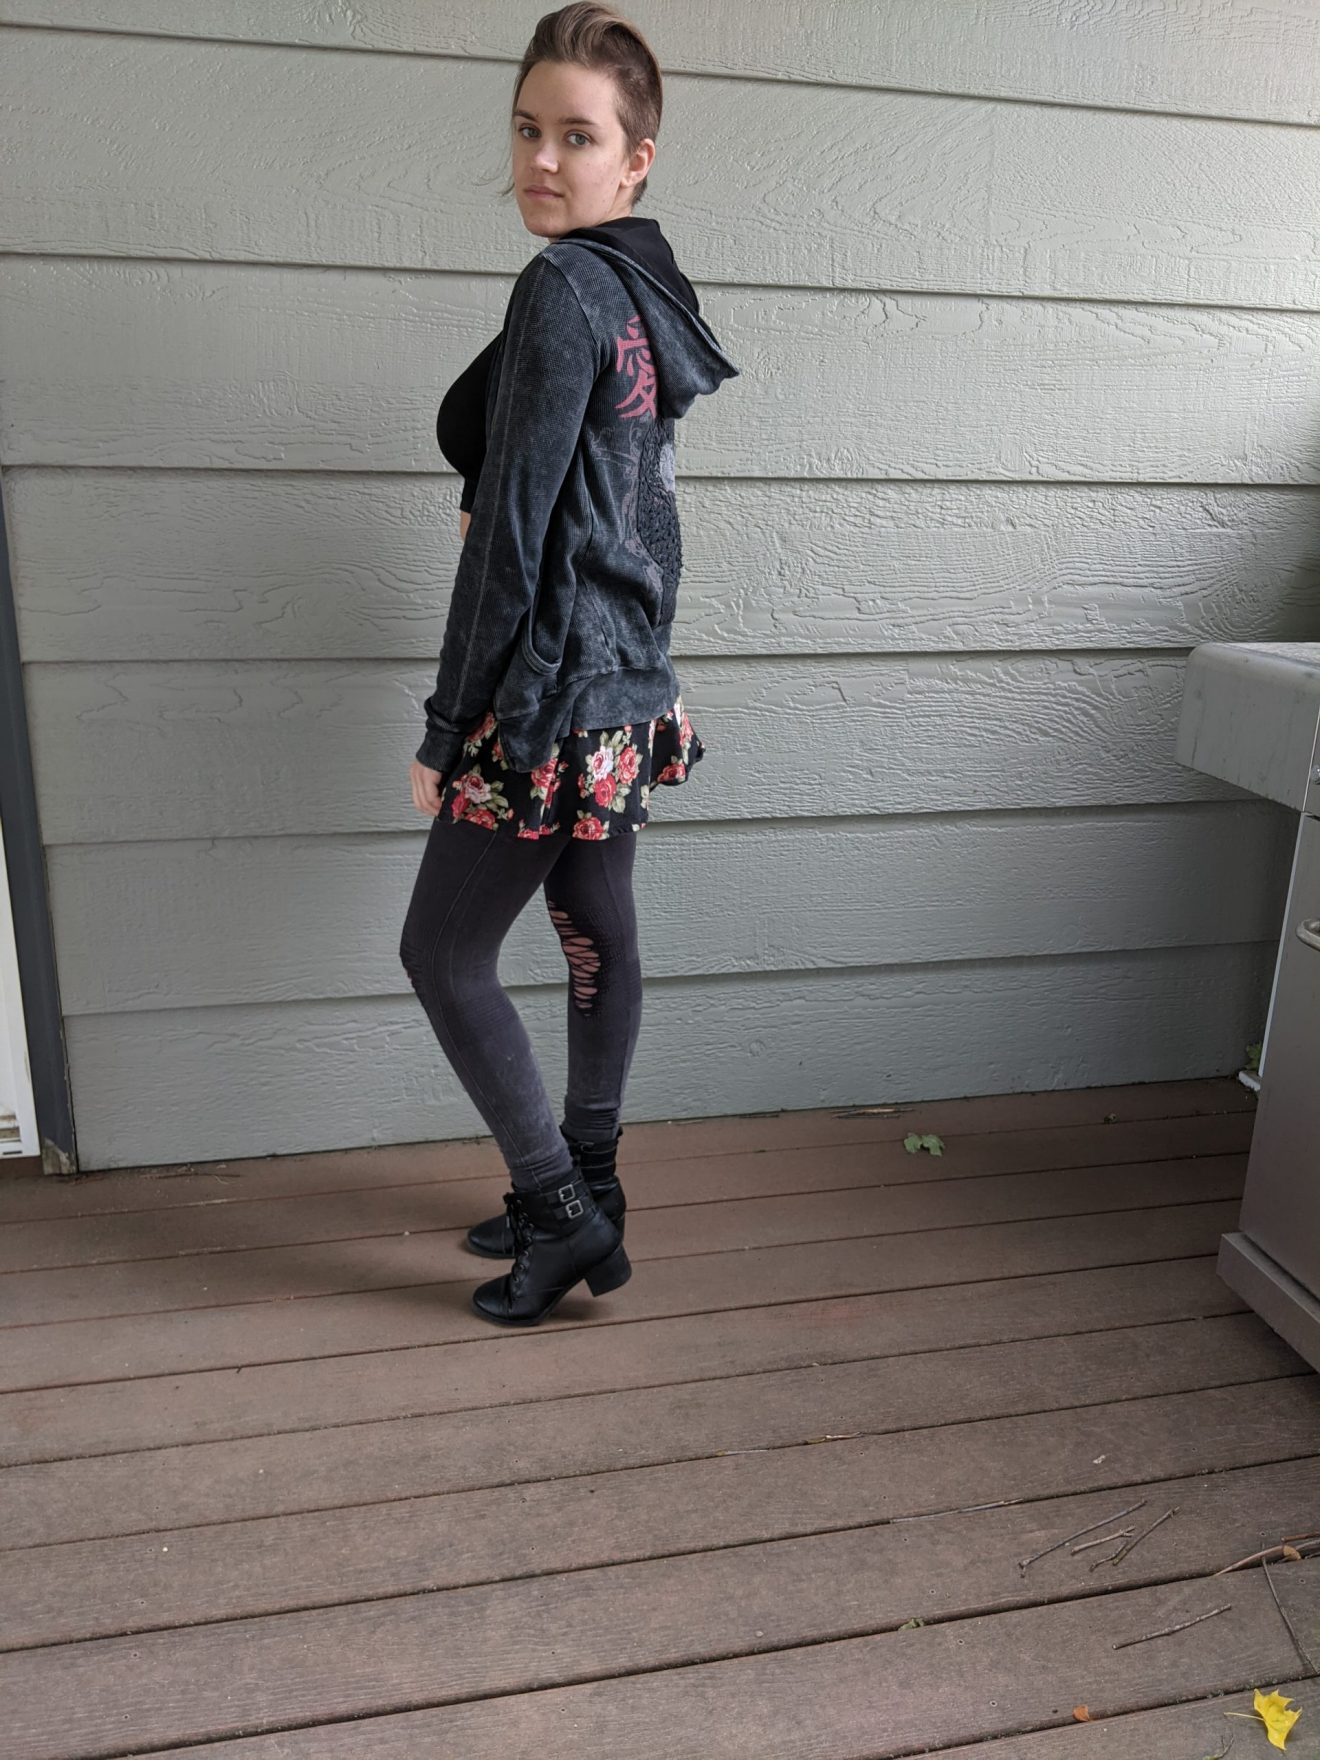 Beautiful Heartache Alissa Ackerman Story Behind The Cloth fashion blog edgy sporty romantic outfit 3 scaled